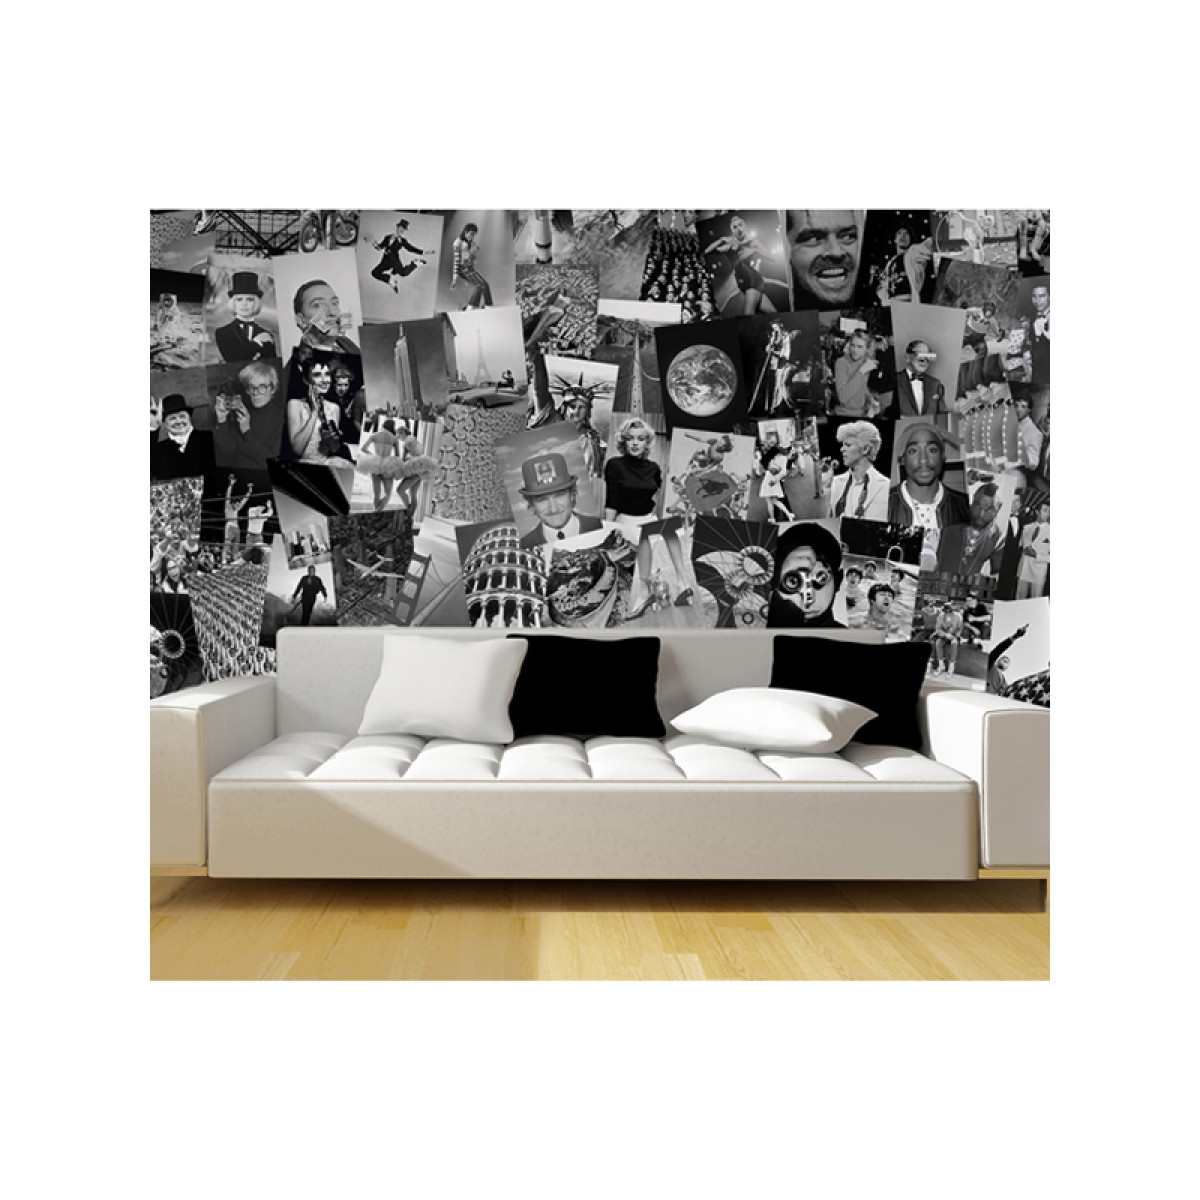 Creative collage life designer wall mural 64 piece for Mural collage